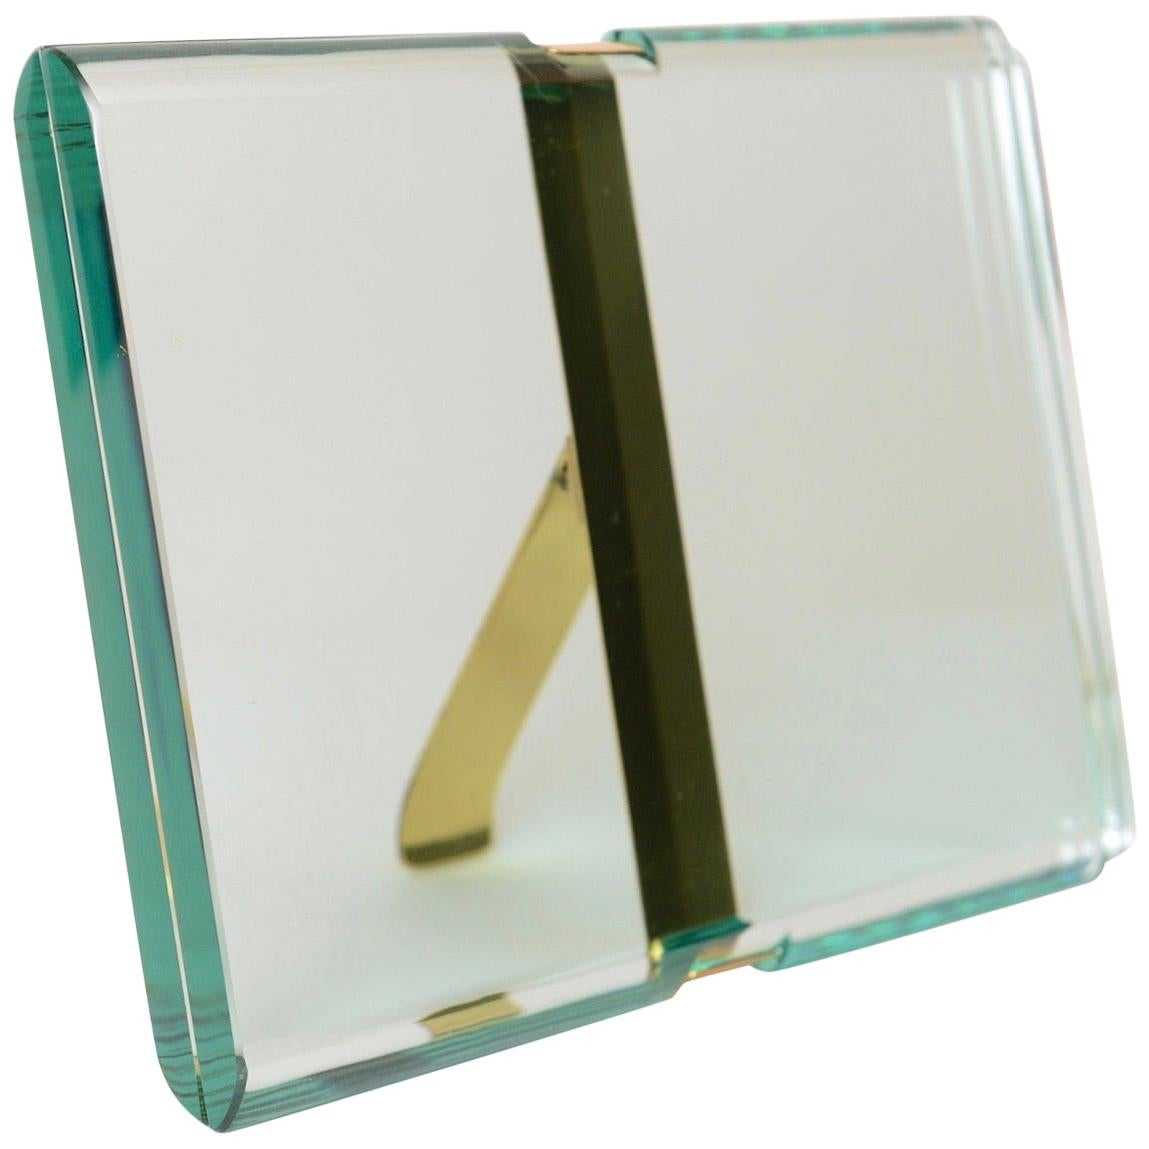 Fontana Arte '1370/1 Model' St Gobain Crystal Picture Frame, Italy, circa 1960